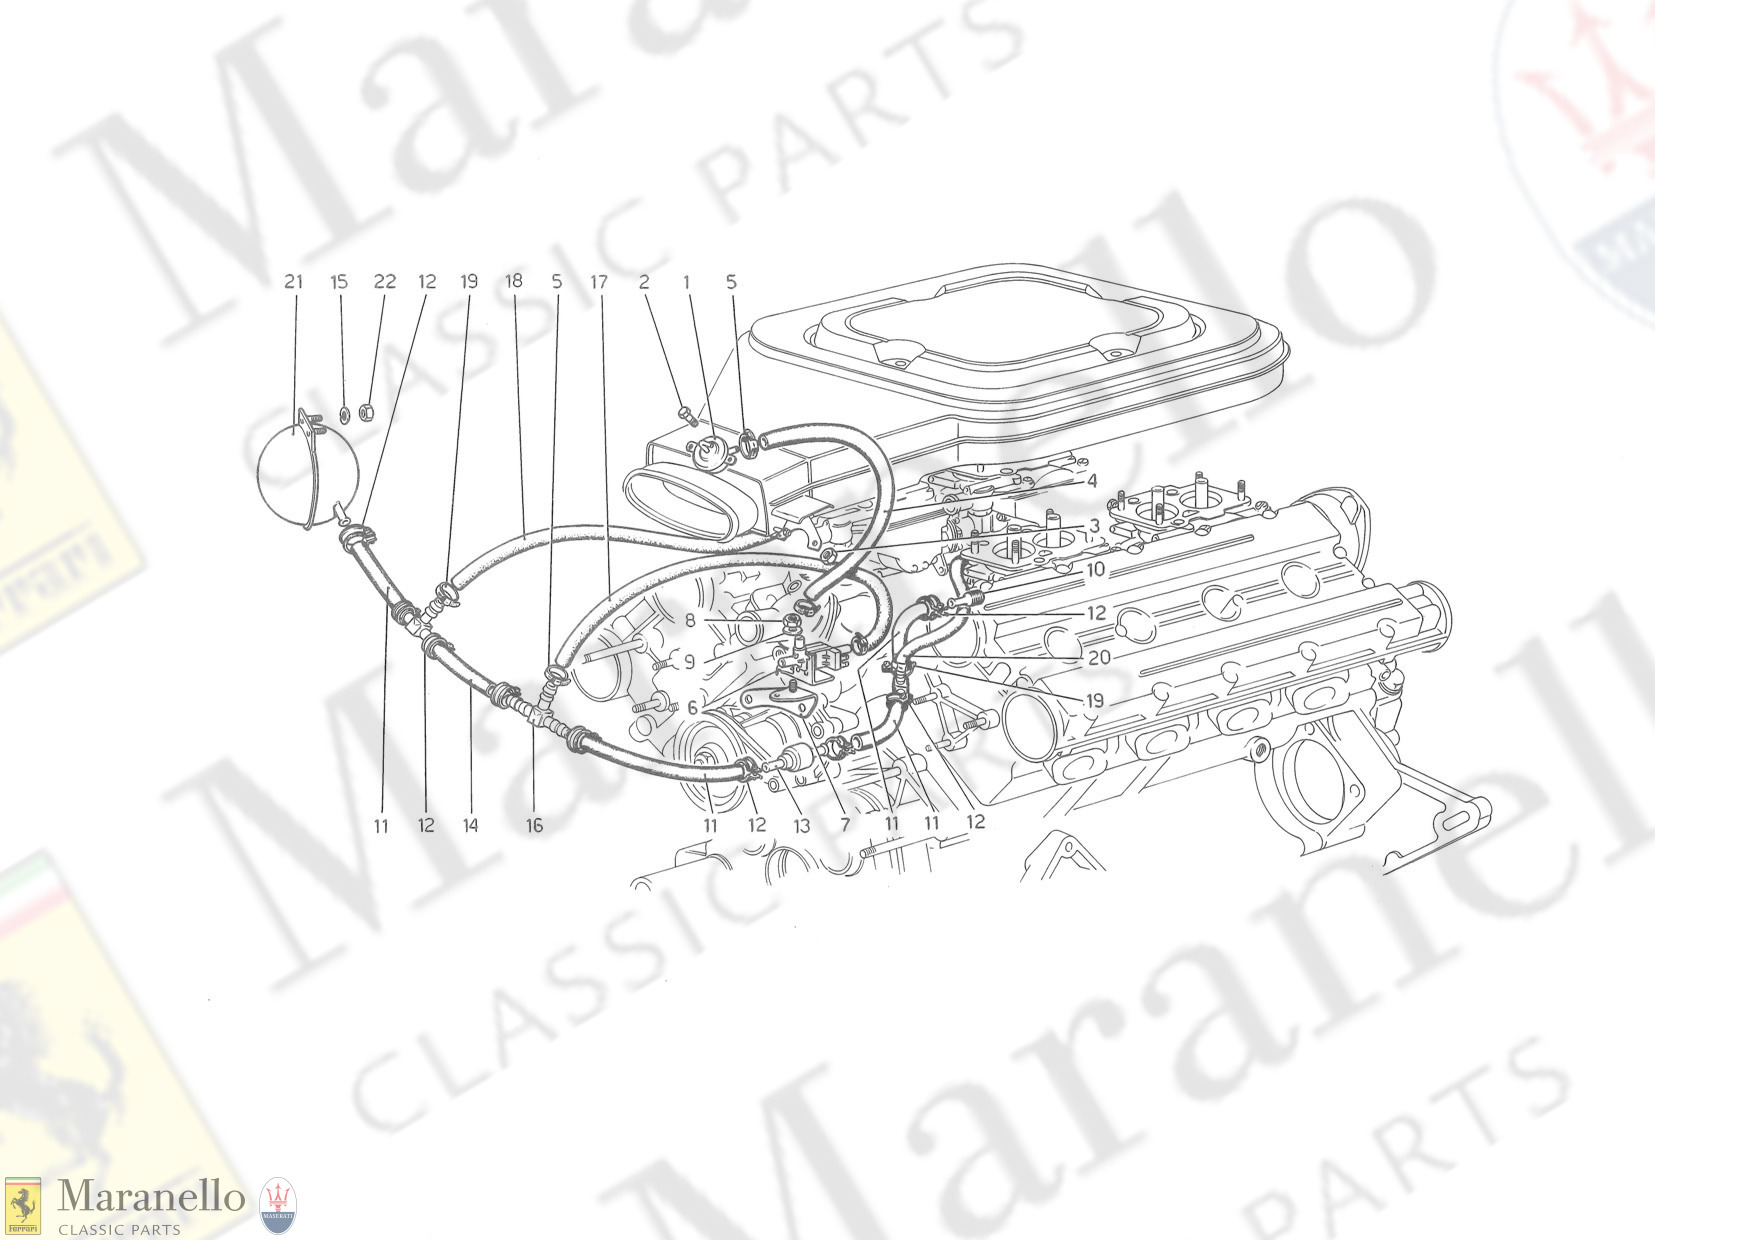 013 - Intake Air Cleaner Valve And Lines